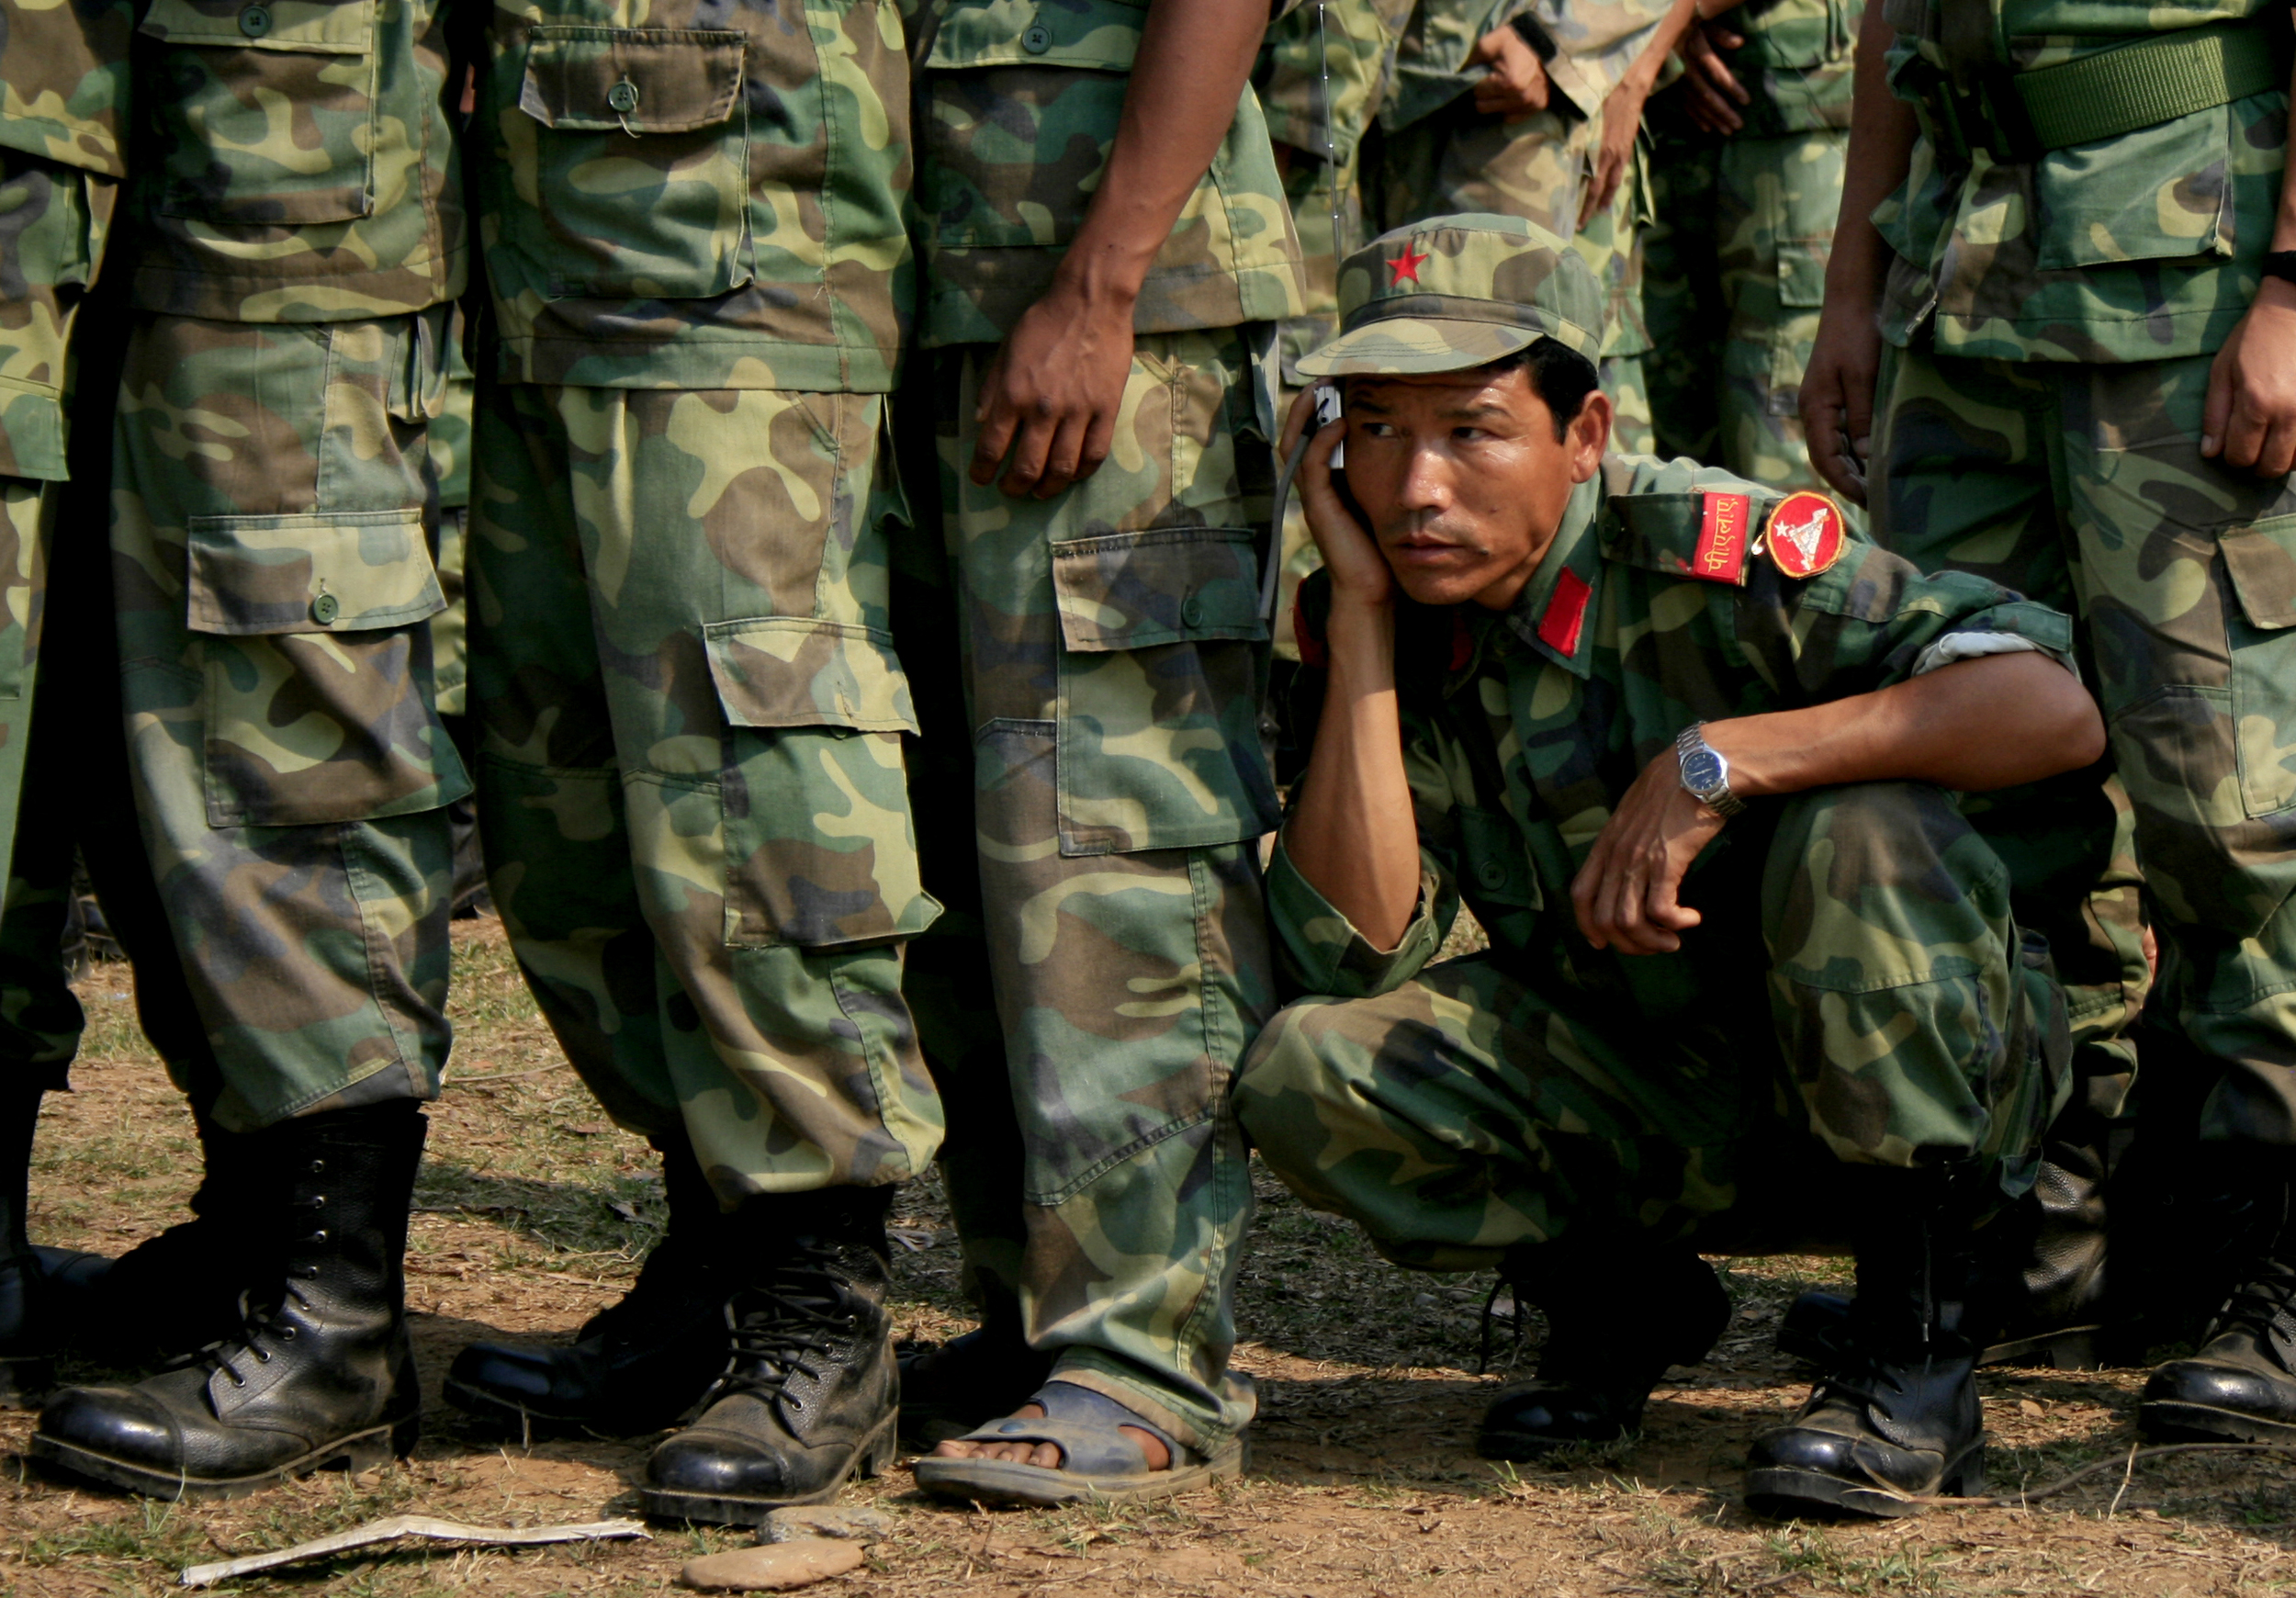 Maoist soldier listens to radio news updates attentively during the Nepalese constituent assembly election, 2008. Photo by Rashmi Thapa